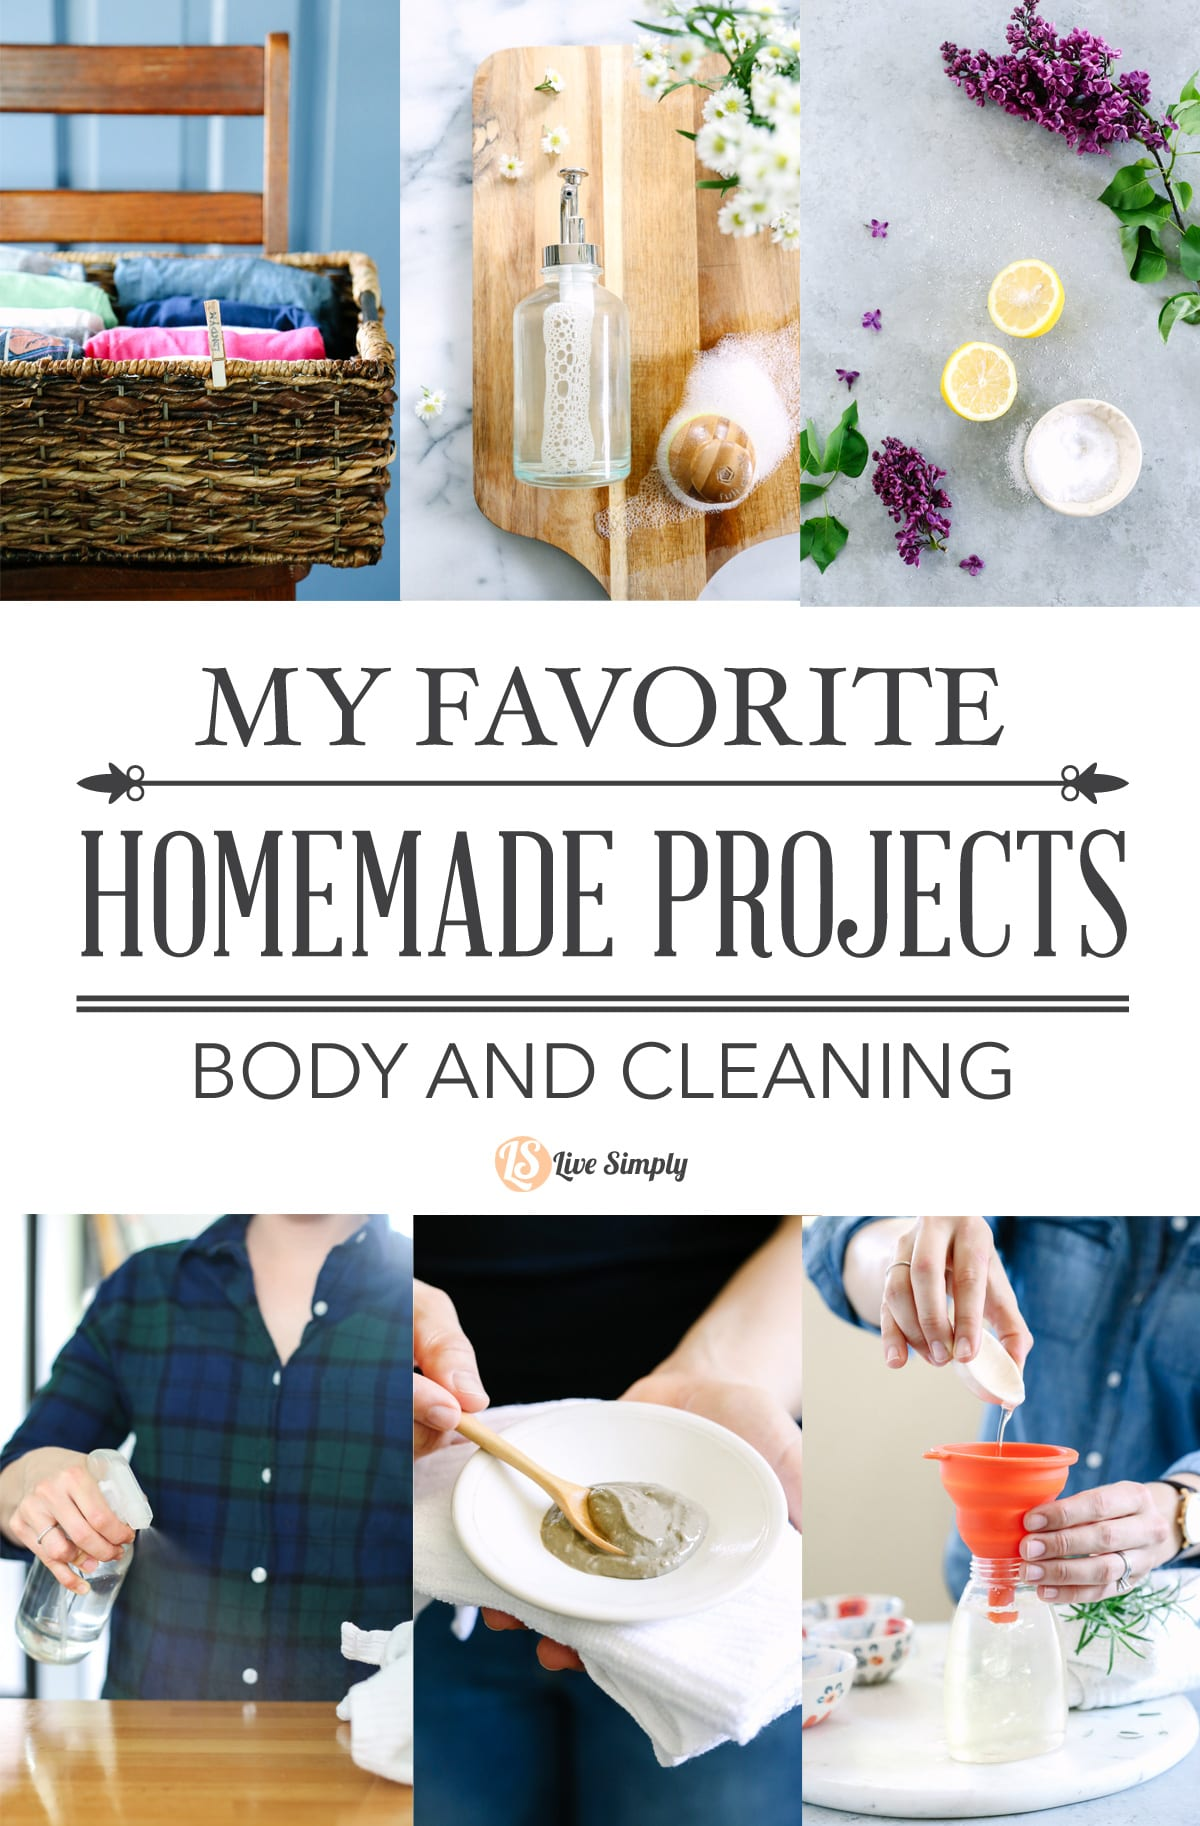 My Favorite Homemade Projects Body and Cleaning